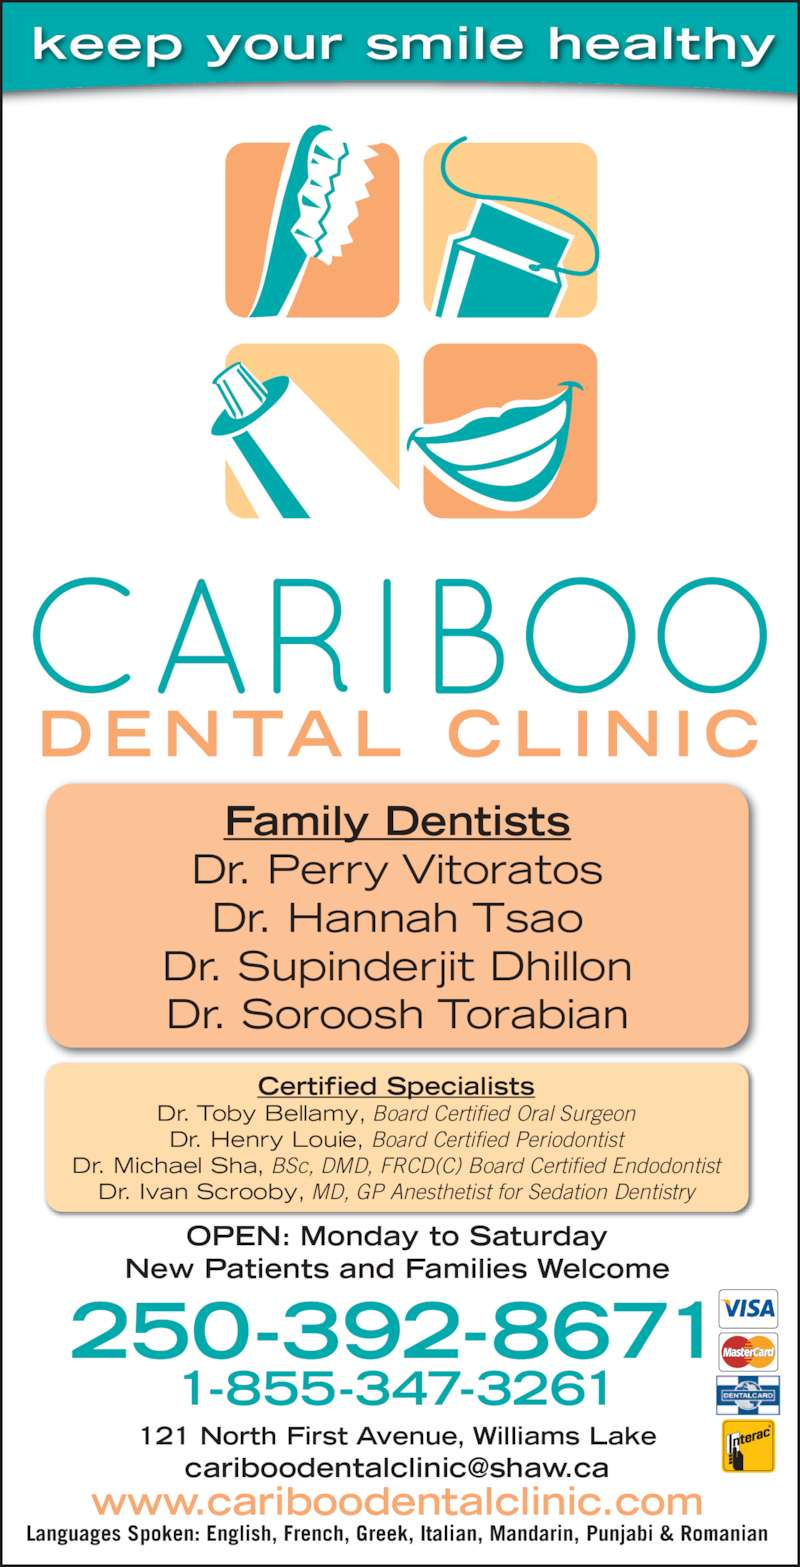 Cariboo Dental Clinic (2503987161) - Display Ad - keep your smile healthy 250-392-8671 121 North First Avenue, Williams Lake 1-855-347-3261 Family Dentists Dr. Perry Vitoratos Dr. Hannah Tsao Dr. Supinderjit Dhillon Dr. Soroosh Torabian Certified Specialists Dr. Toby Bellamy, Board Certified Oral Surgeon Dr. Henry Louie, Board Certified Periodontist Dr. Michael Sha, BSc, DMD, FRCD(C) Board Certified Endodontist Dr. Ivan Scrooby, MD, GP Anesthetist for Sedation Dentistry OPEN: Monday to Saturday New Patients and Families Welcome Languages Spoken: English, French, Greek, Italian, Mandarin, Punjabi & Romanian www.cariboodentalclinic.com